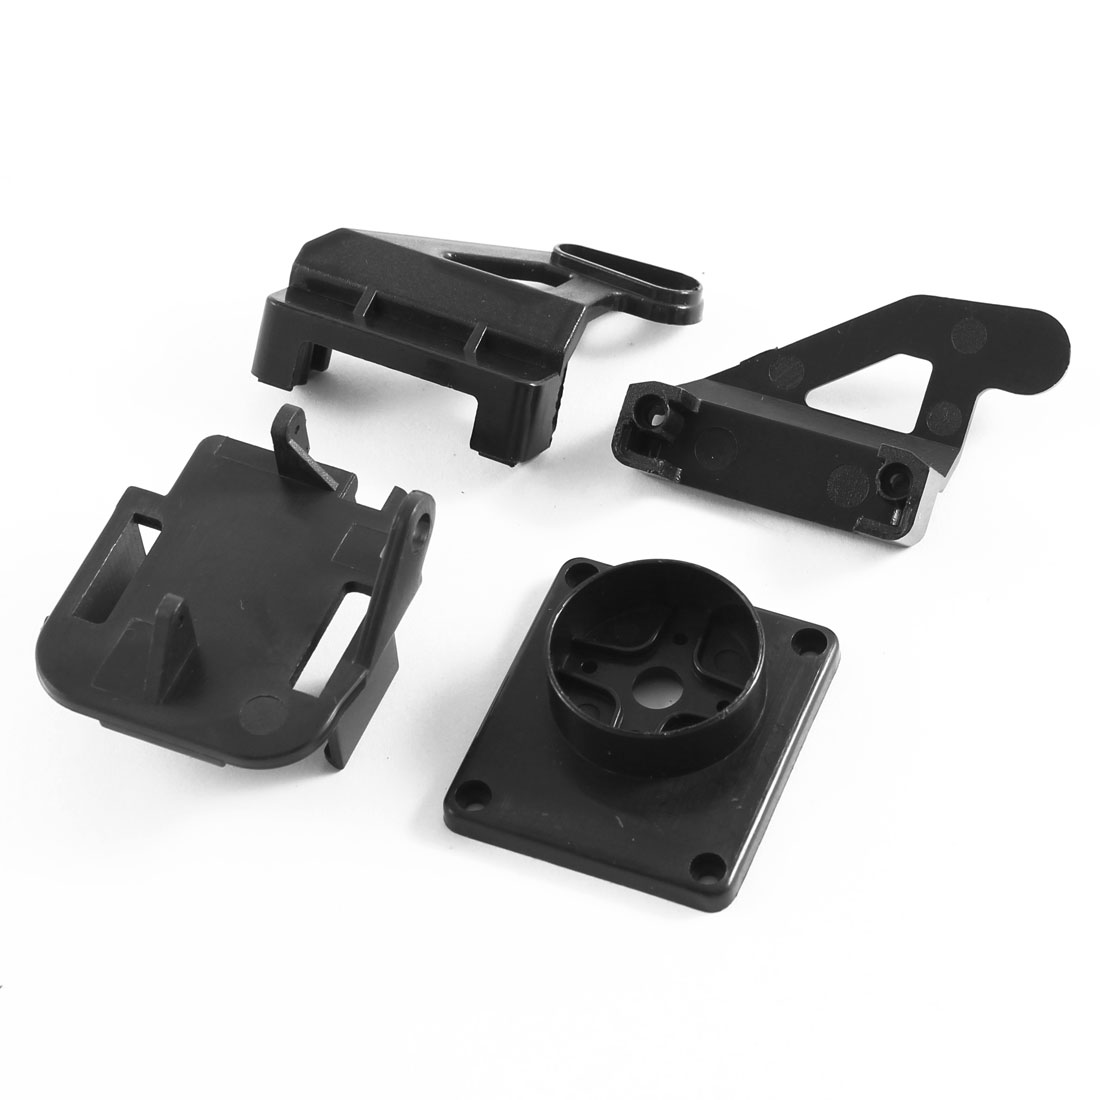 Carbon Fiber FPV Monitor Holder LCD Display Mounting Bracket for Transmitter